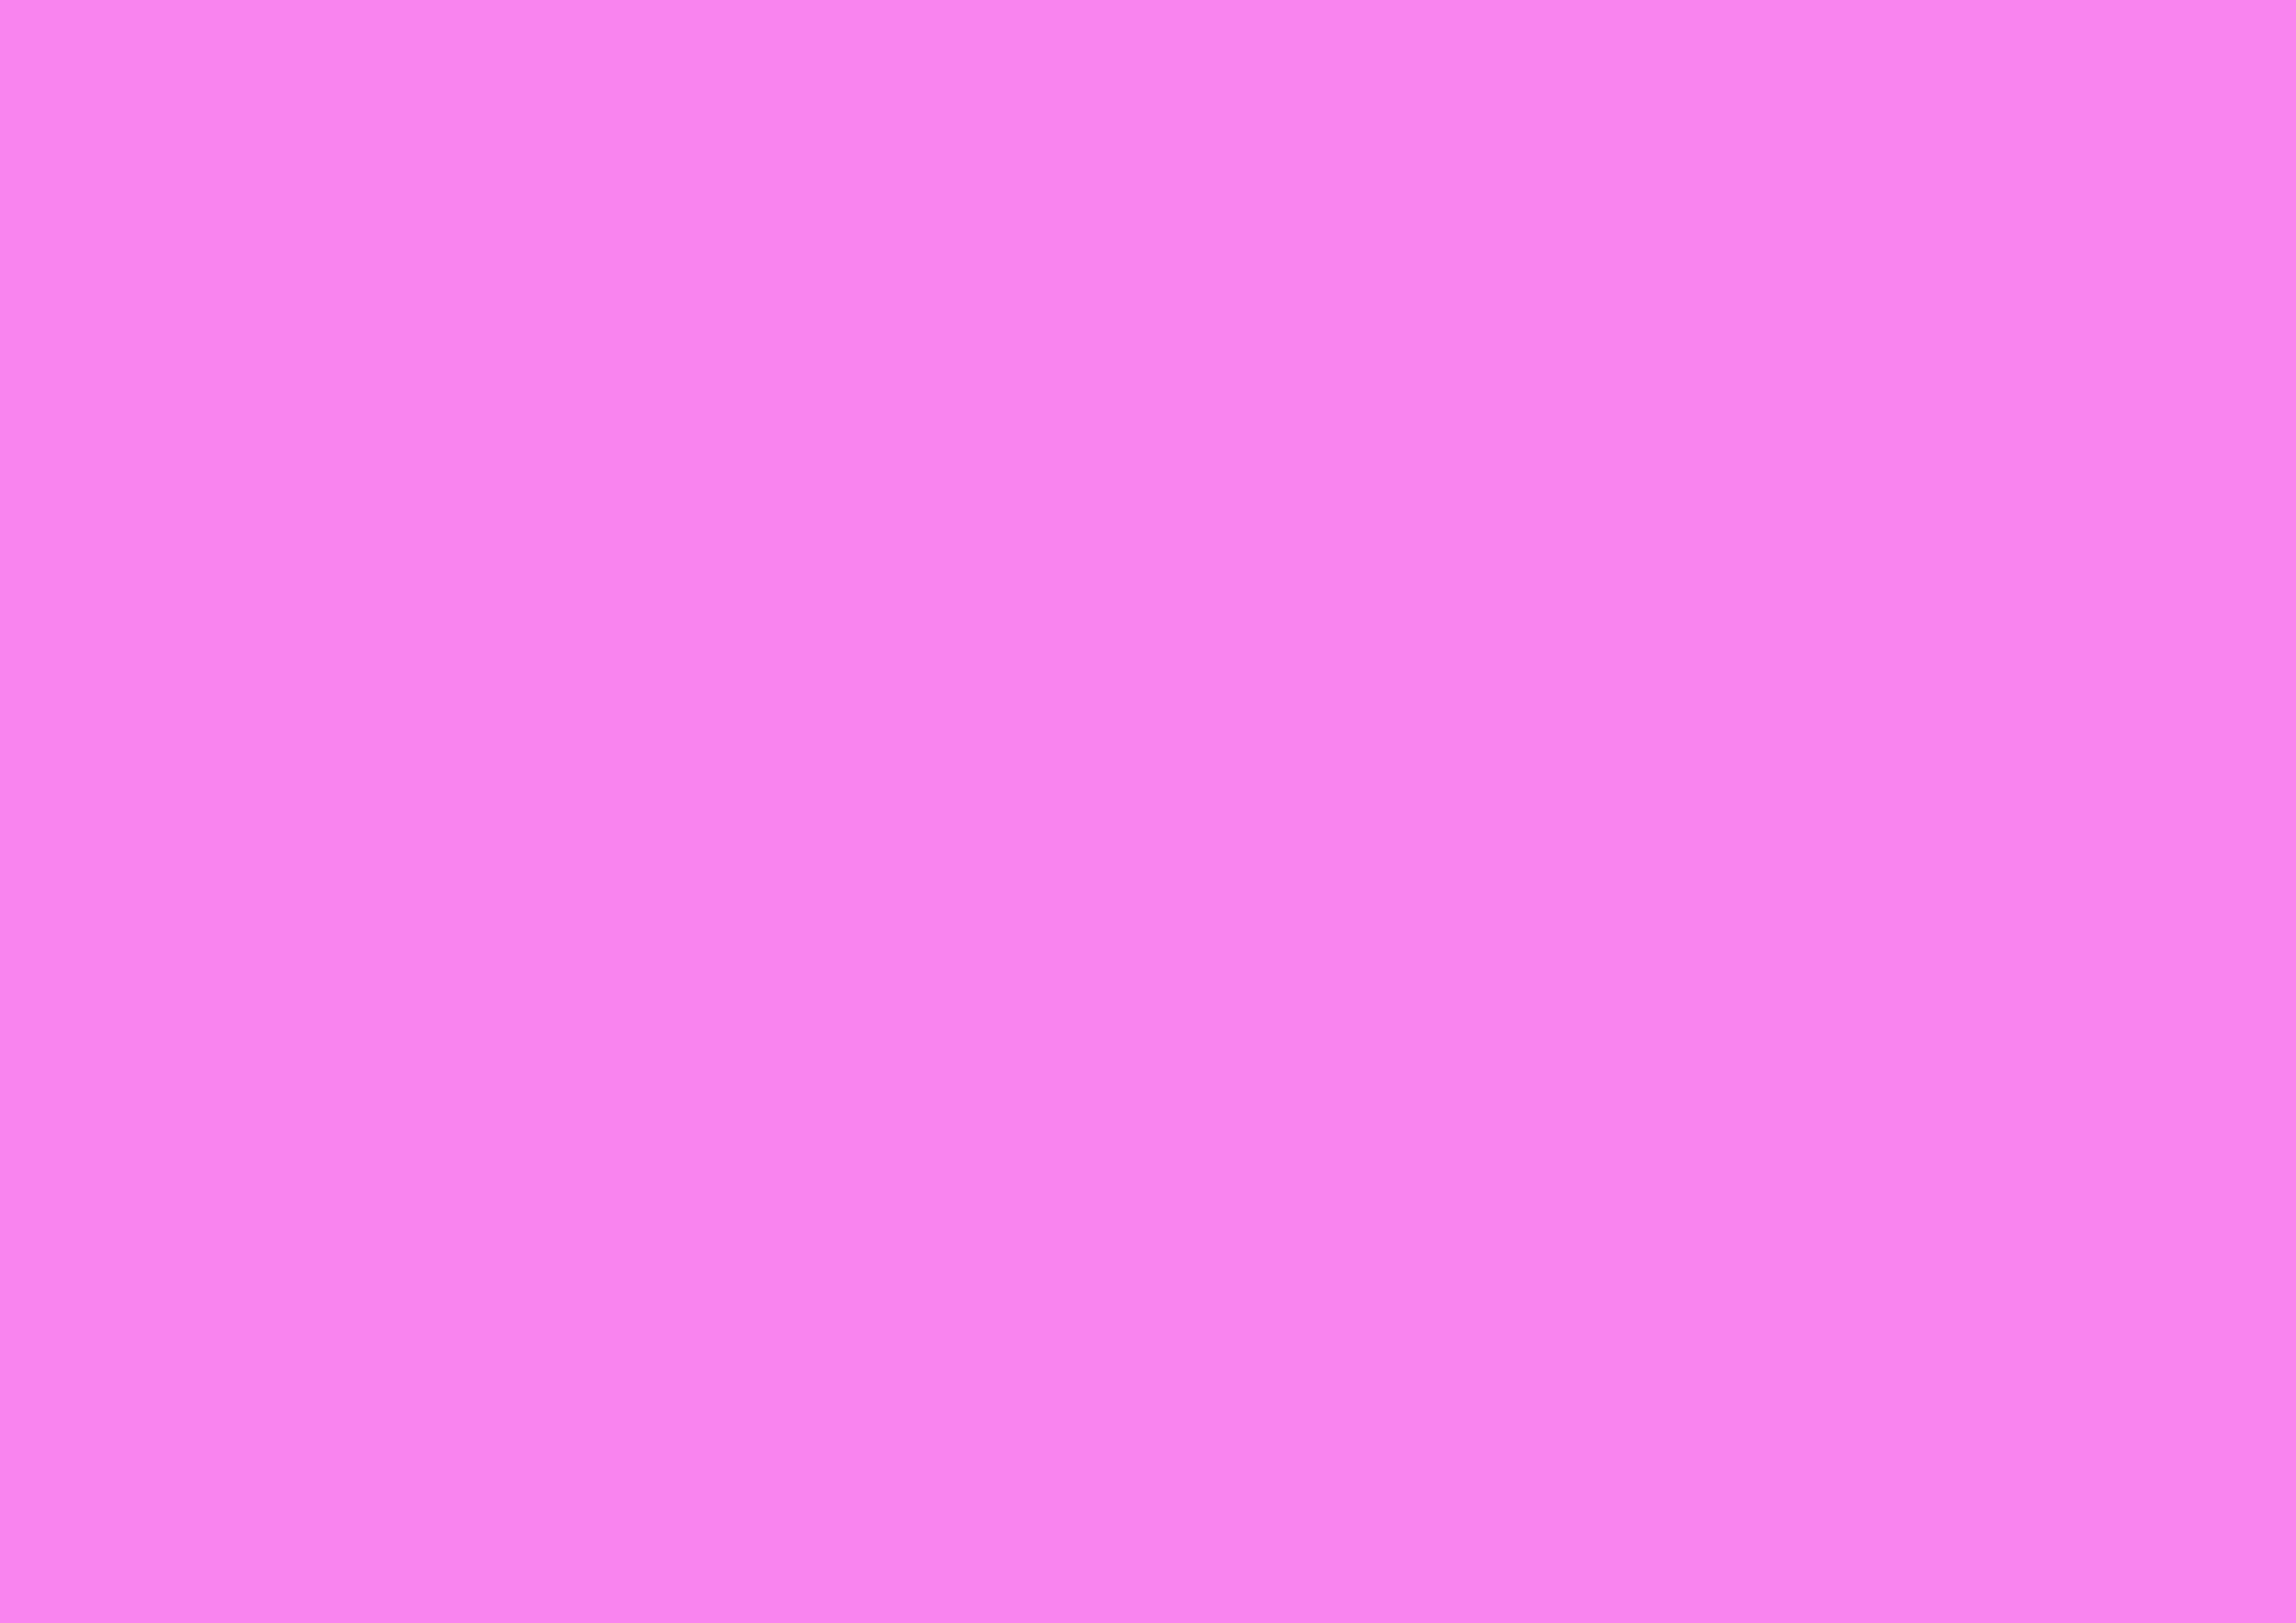 3508x2480 Light Fuchsia Pink Solid Color Background